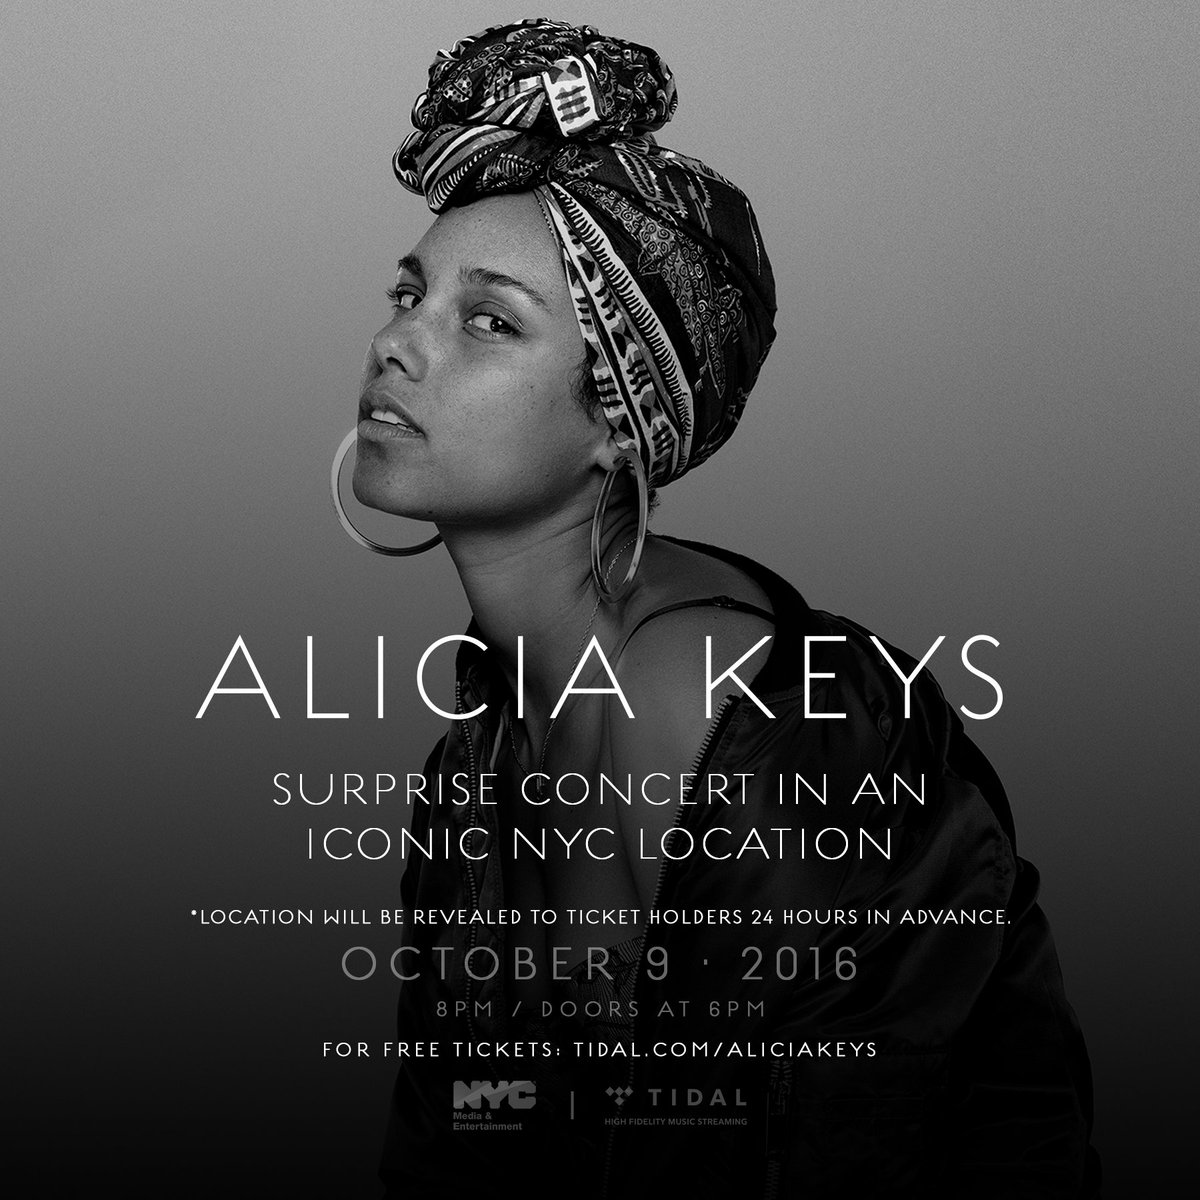 alicia keys on twitter if you missed